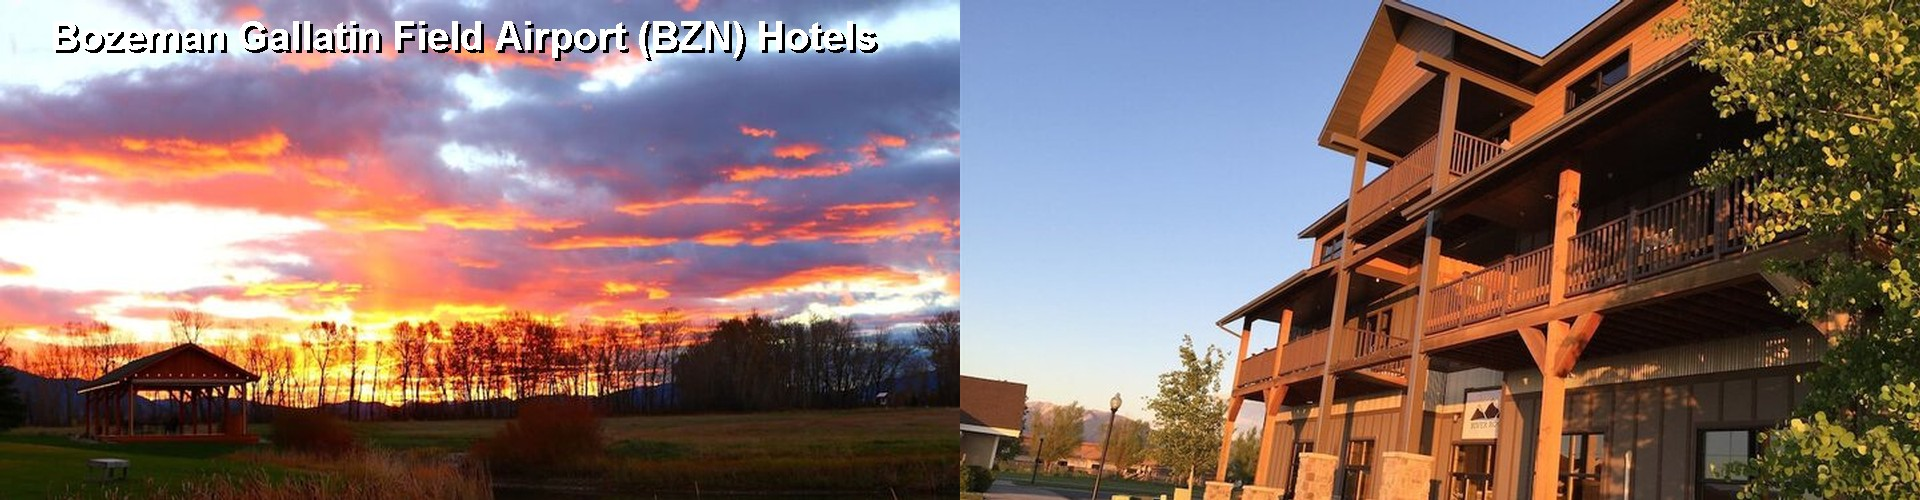 Hotels In Bozeman Mt Near Airport